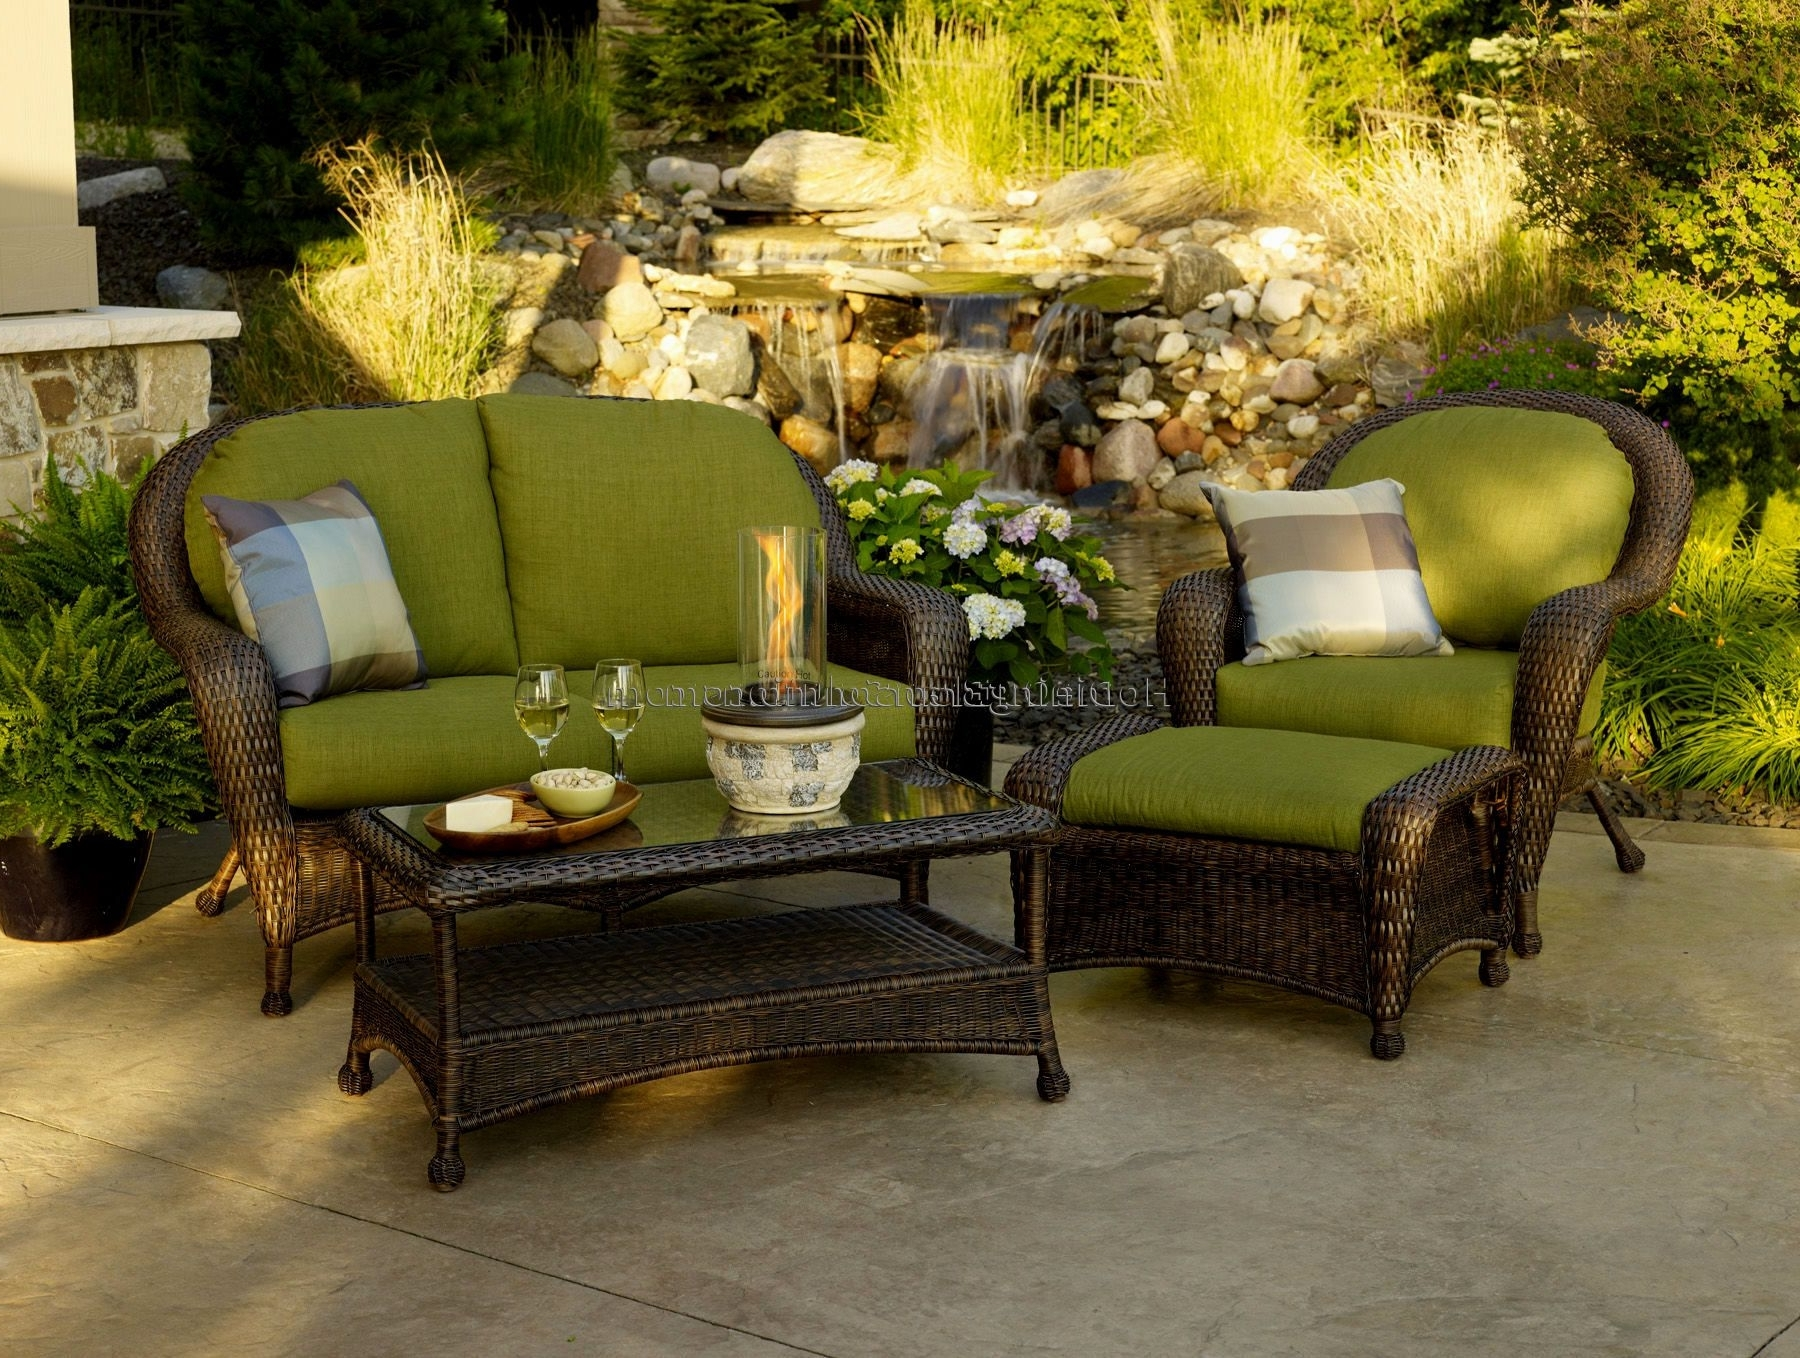 Pier One Patio Conversation Sets Regarding Famous Pier One Outdoor Furniture Reviews – Best Office Furniture Check (View 11 of 15)